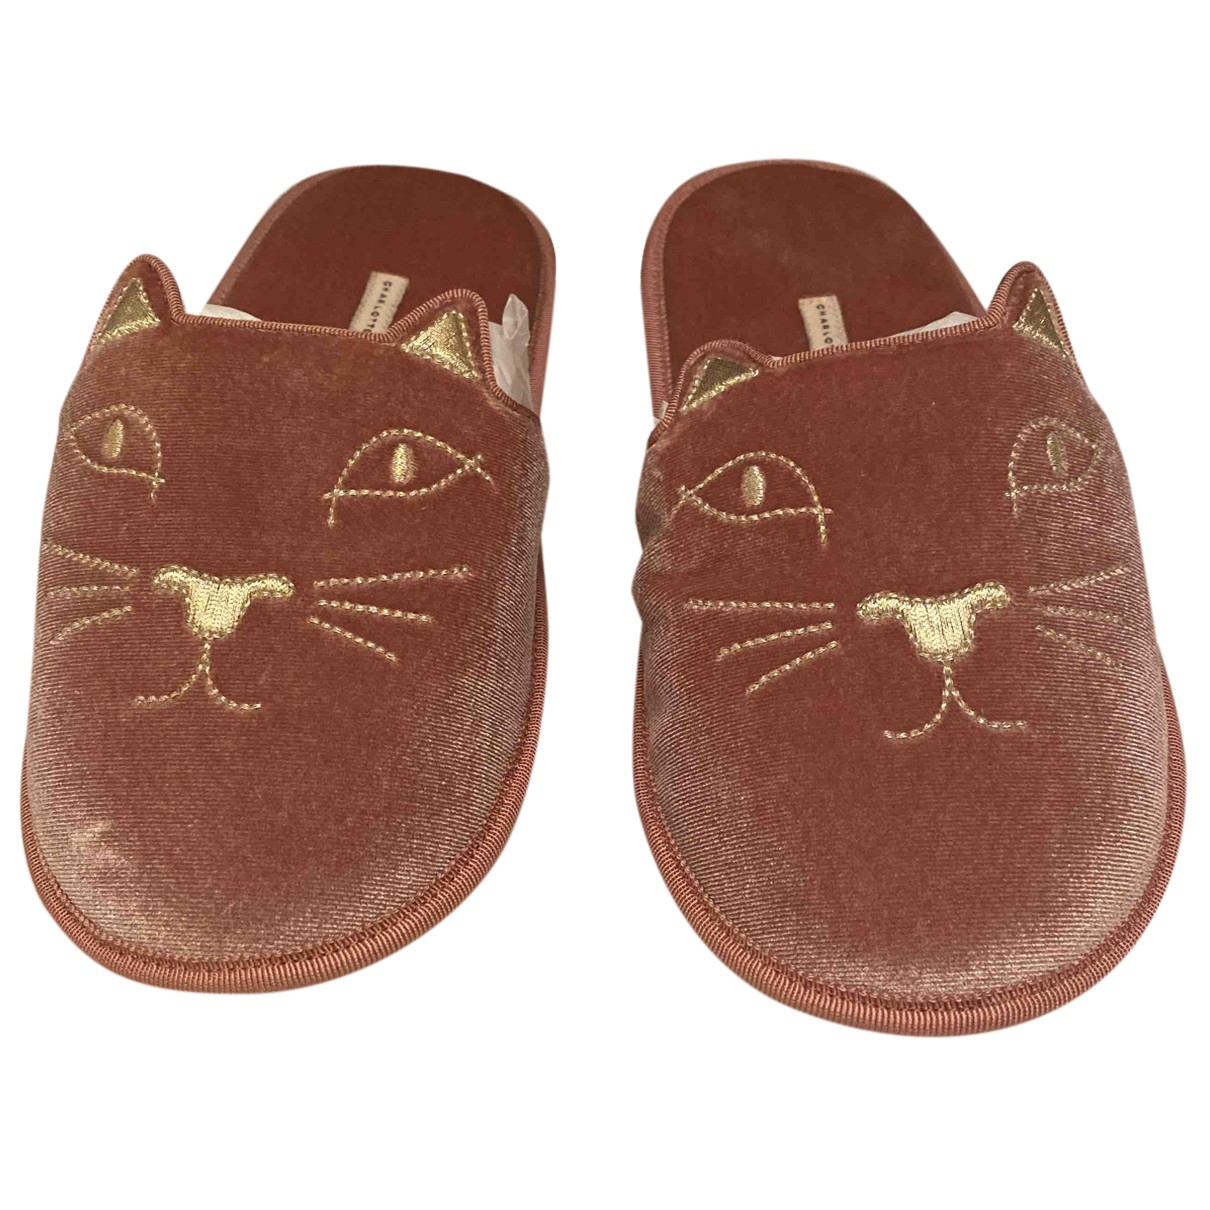 Charlotte Olympia Kitty Pink Suede Sandals for Women 36 EU